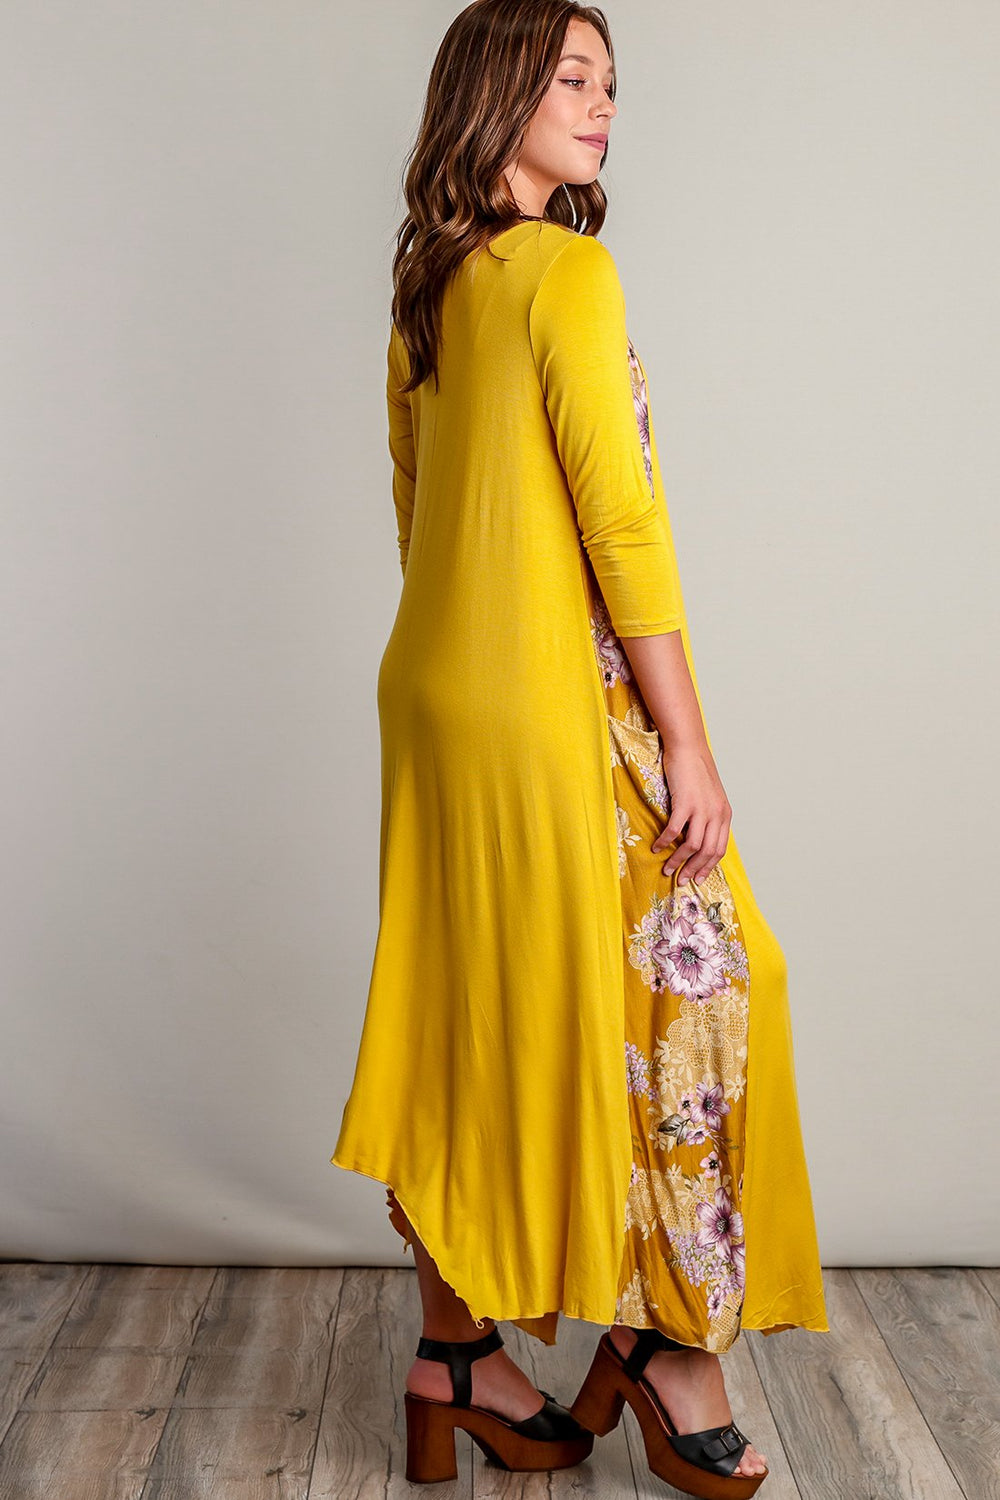 Lucia Mustard Floral Design Maxi Dress - Siin Bees